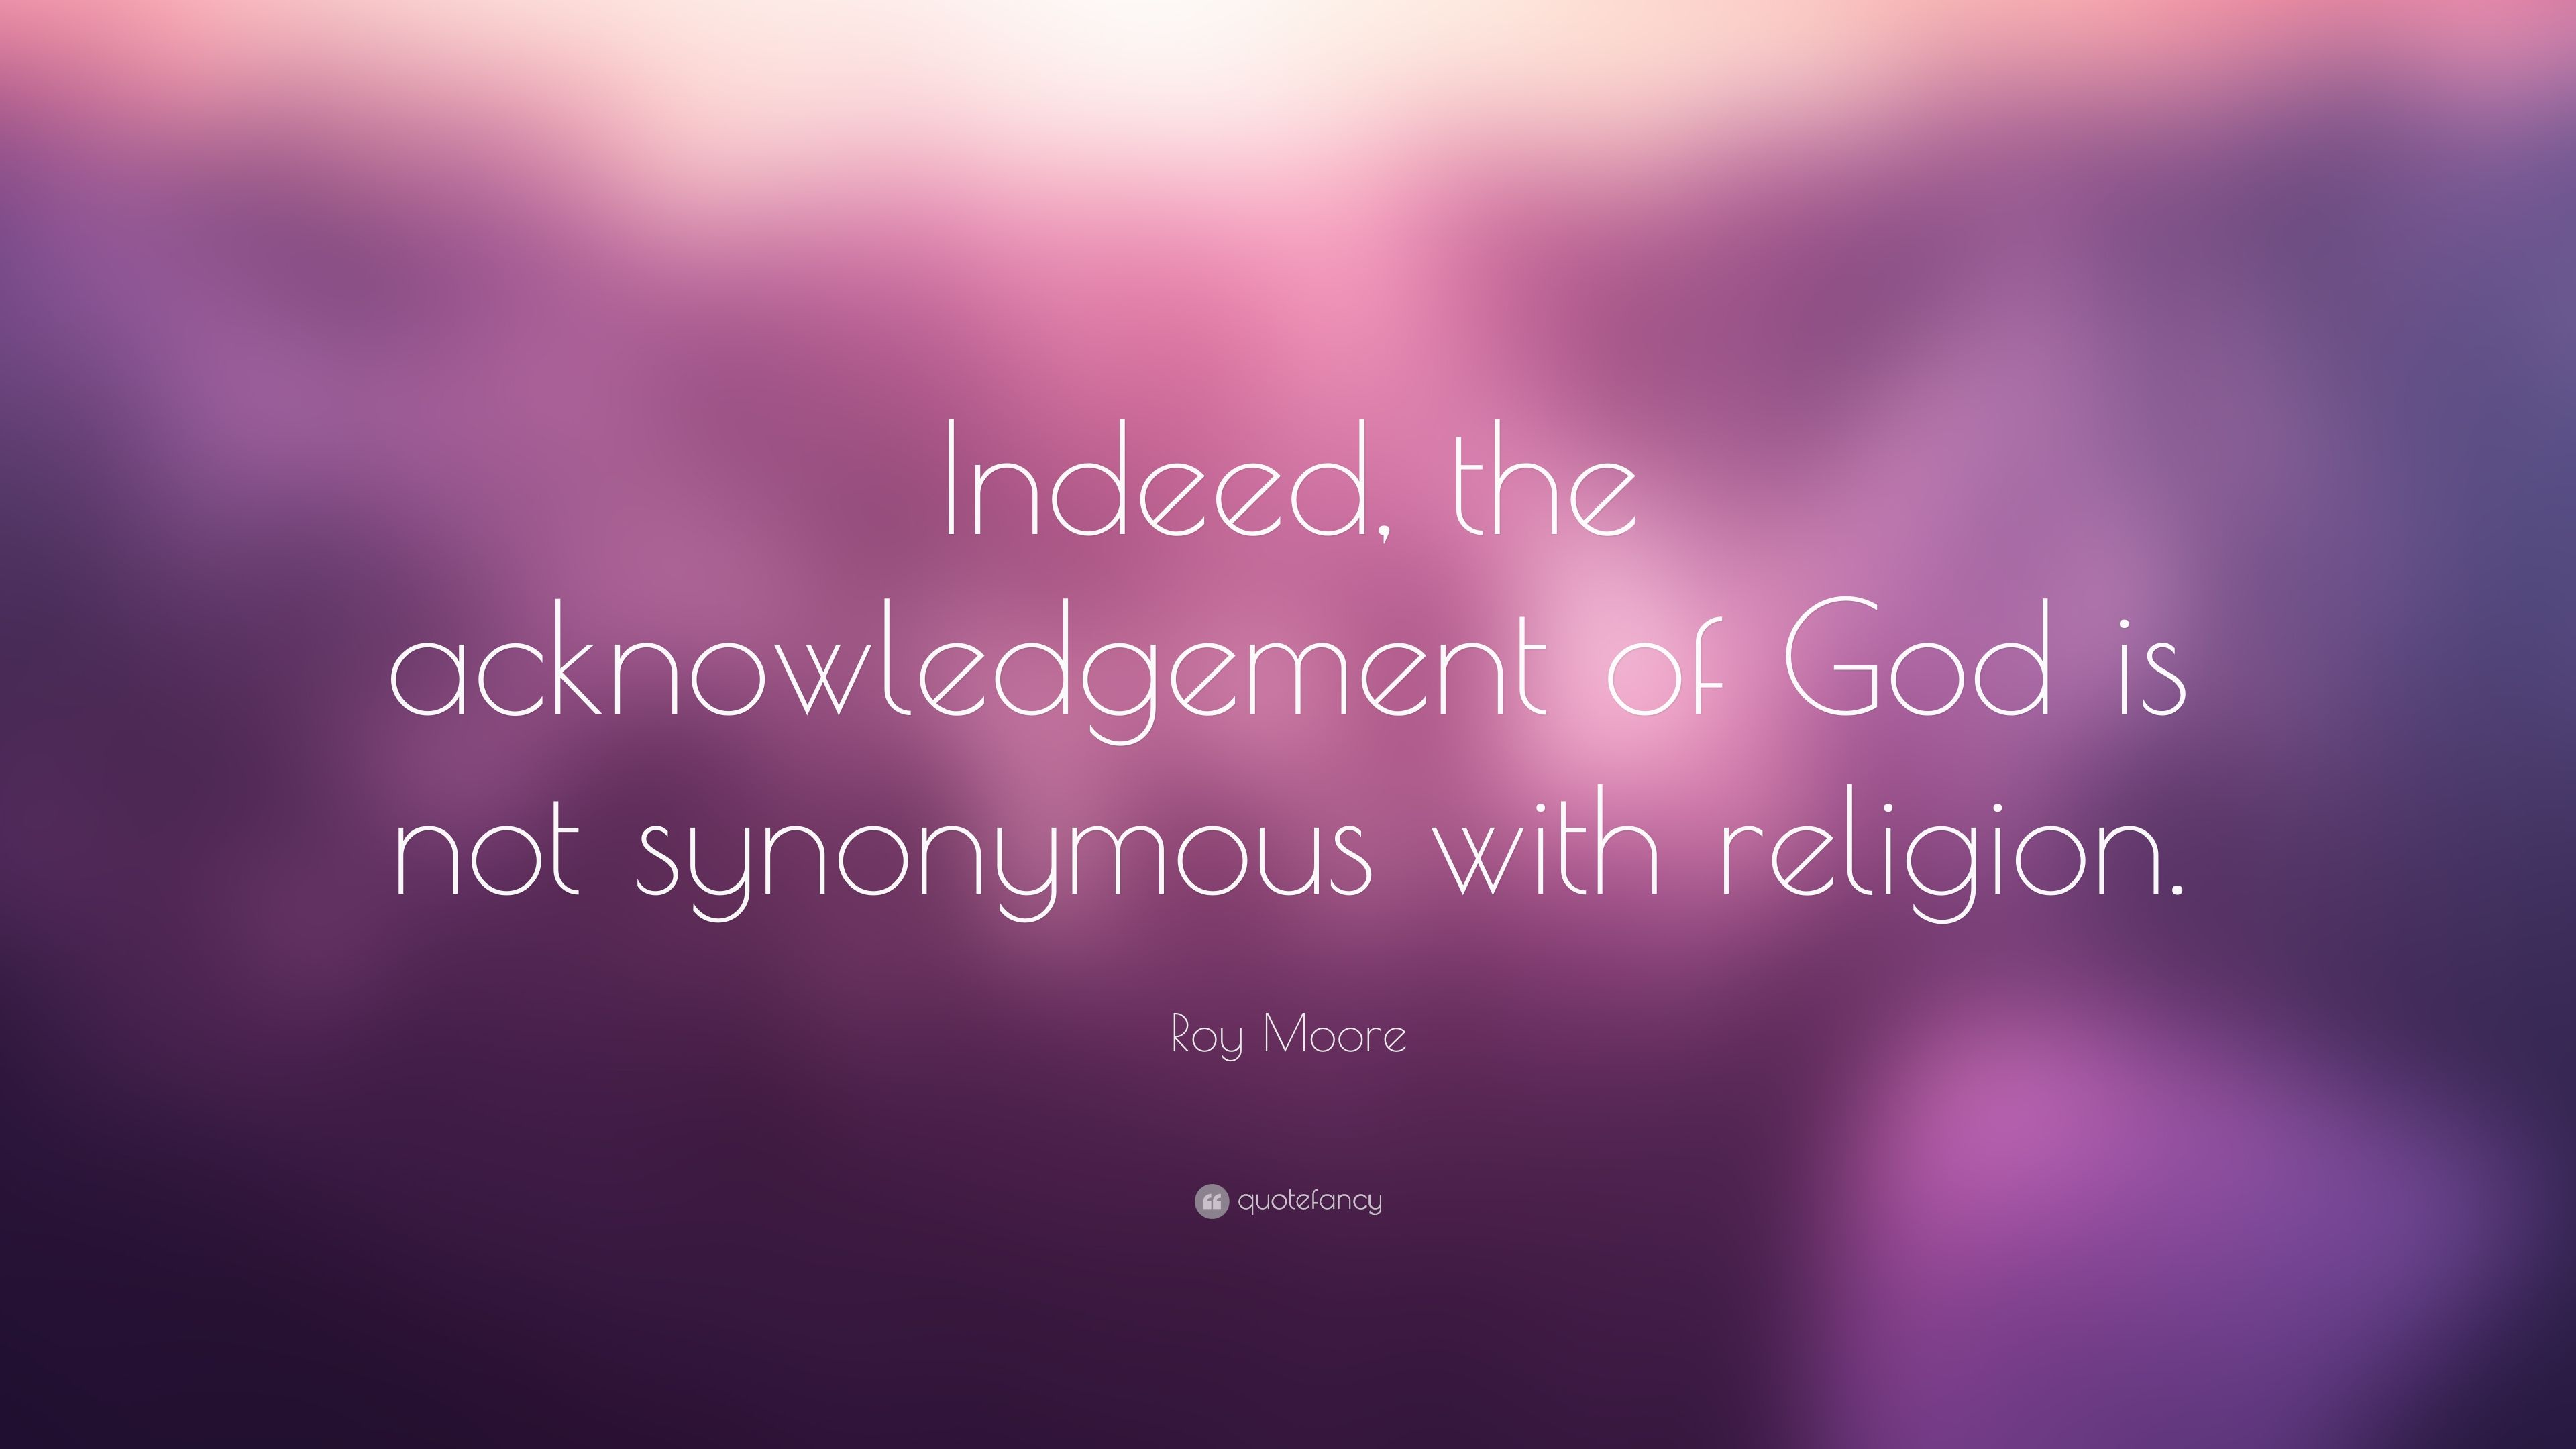 Roy moore quote indeed the acknowledgement of god is not roy moore quote indeed the acknowledgement of god is not synonymous with religion altavistaventures Choice Image